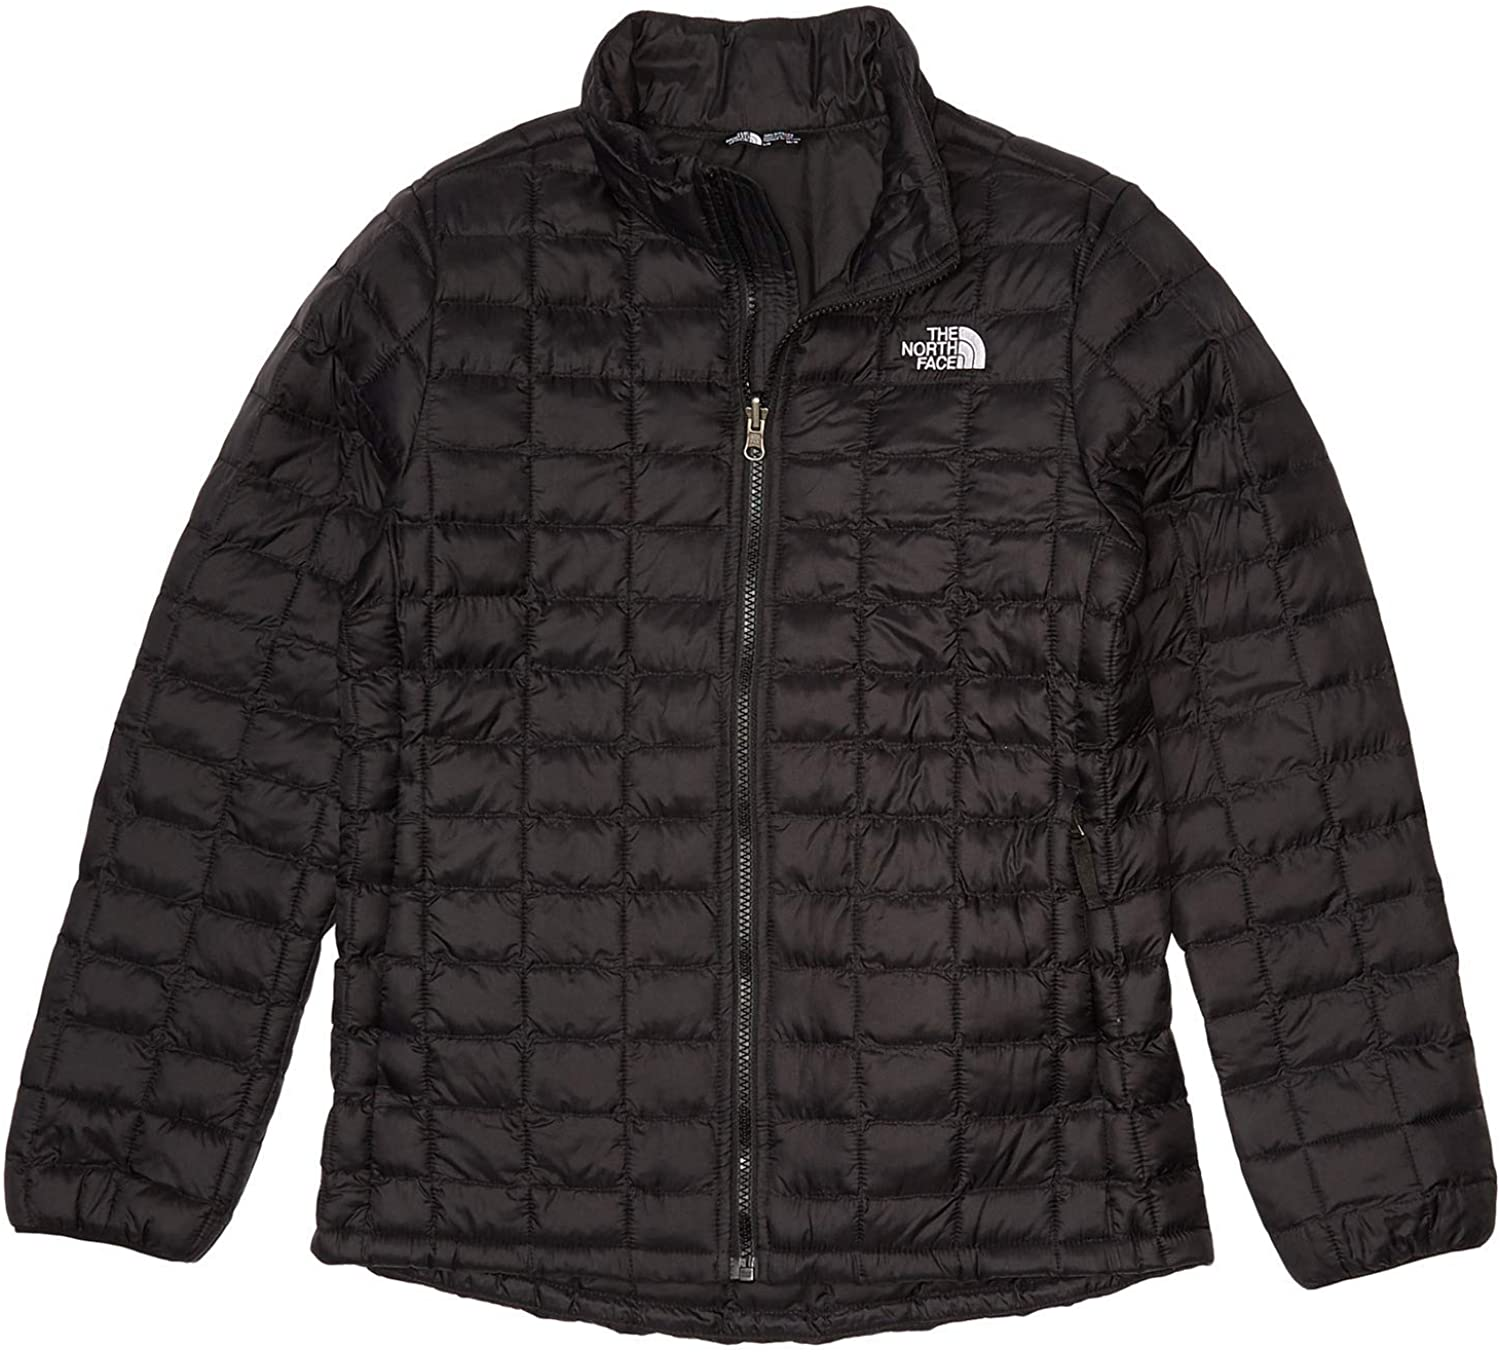 The North Face Girls' Thermoball Eco Jacket